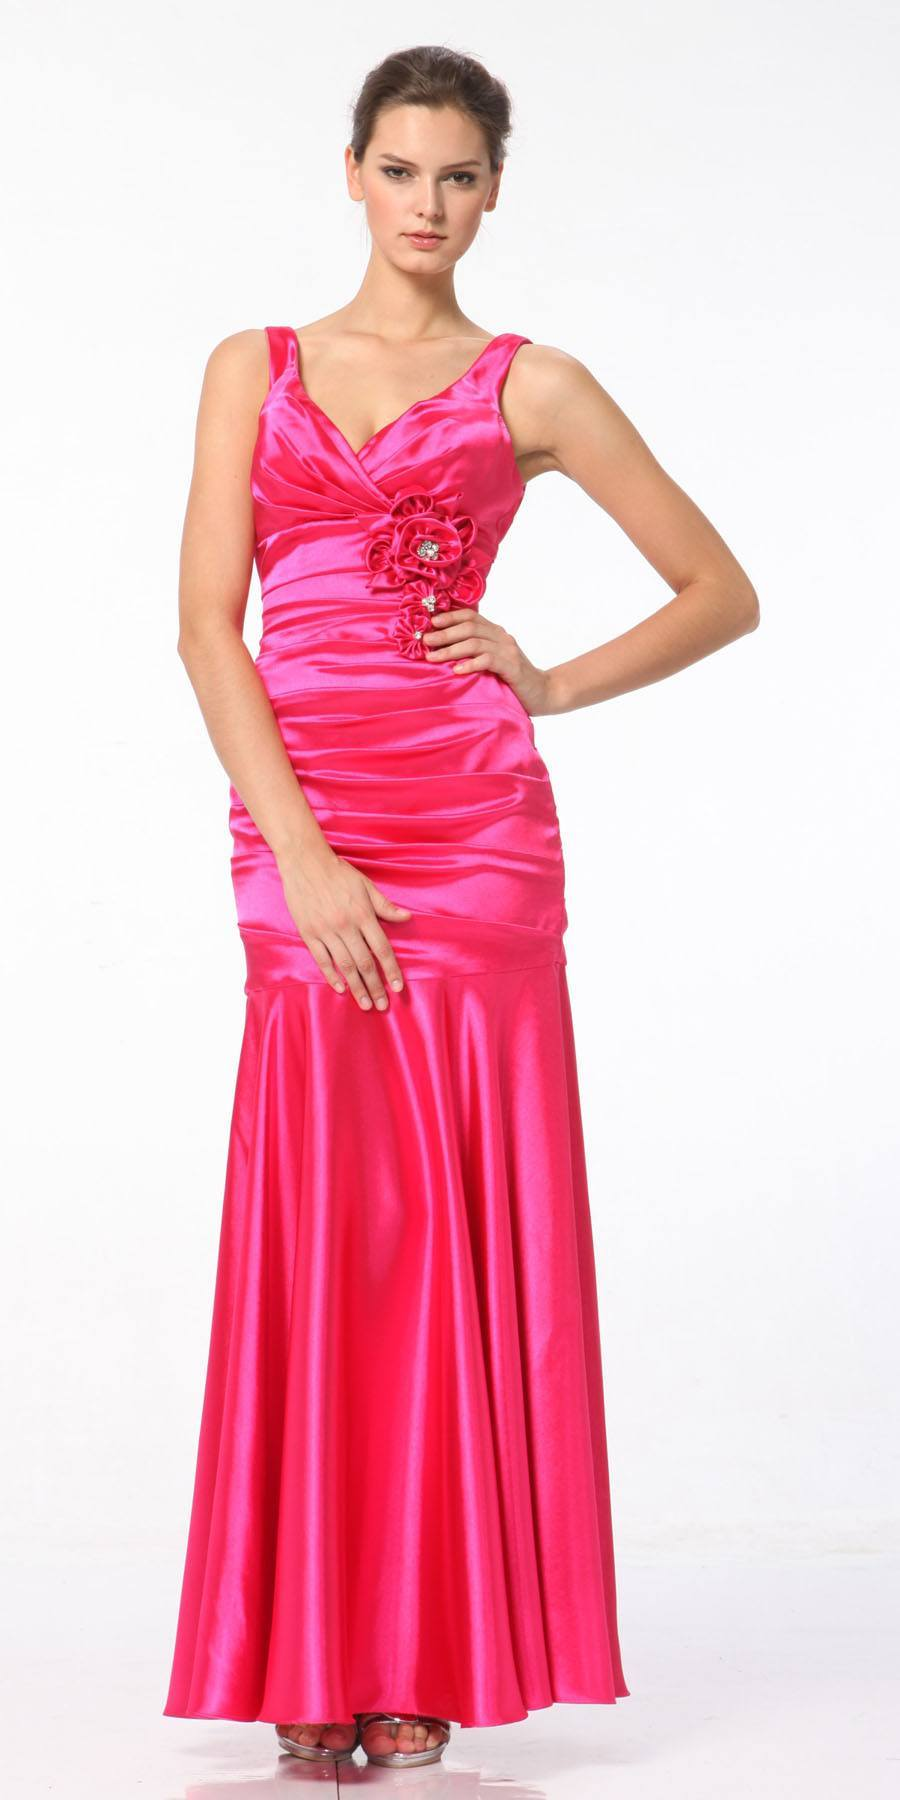 Hot Pink Mermaid Dress Long Pleated Bodice Floral Detail Gown